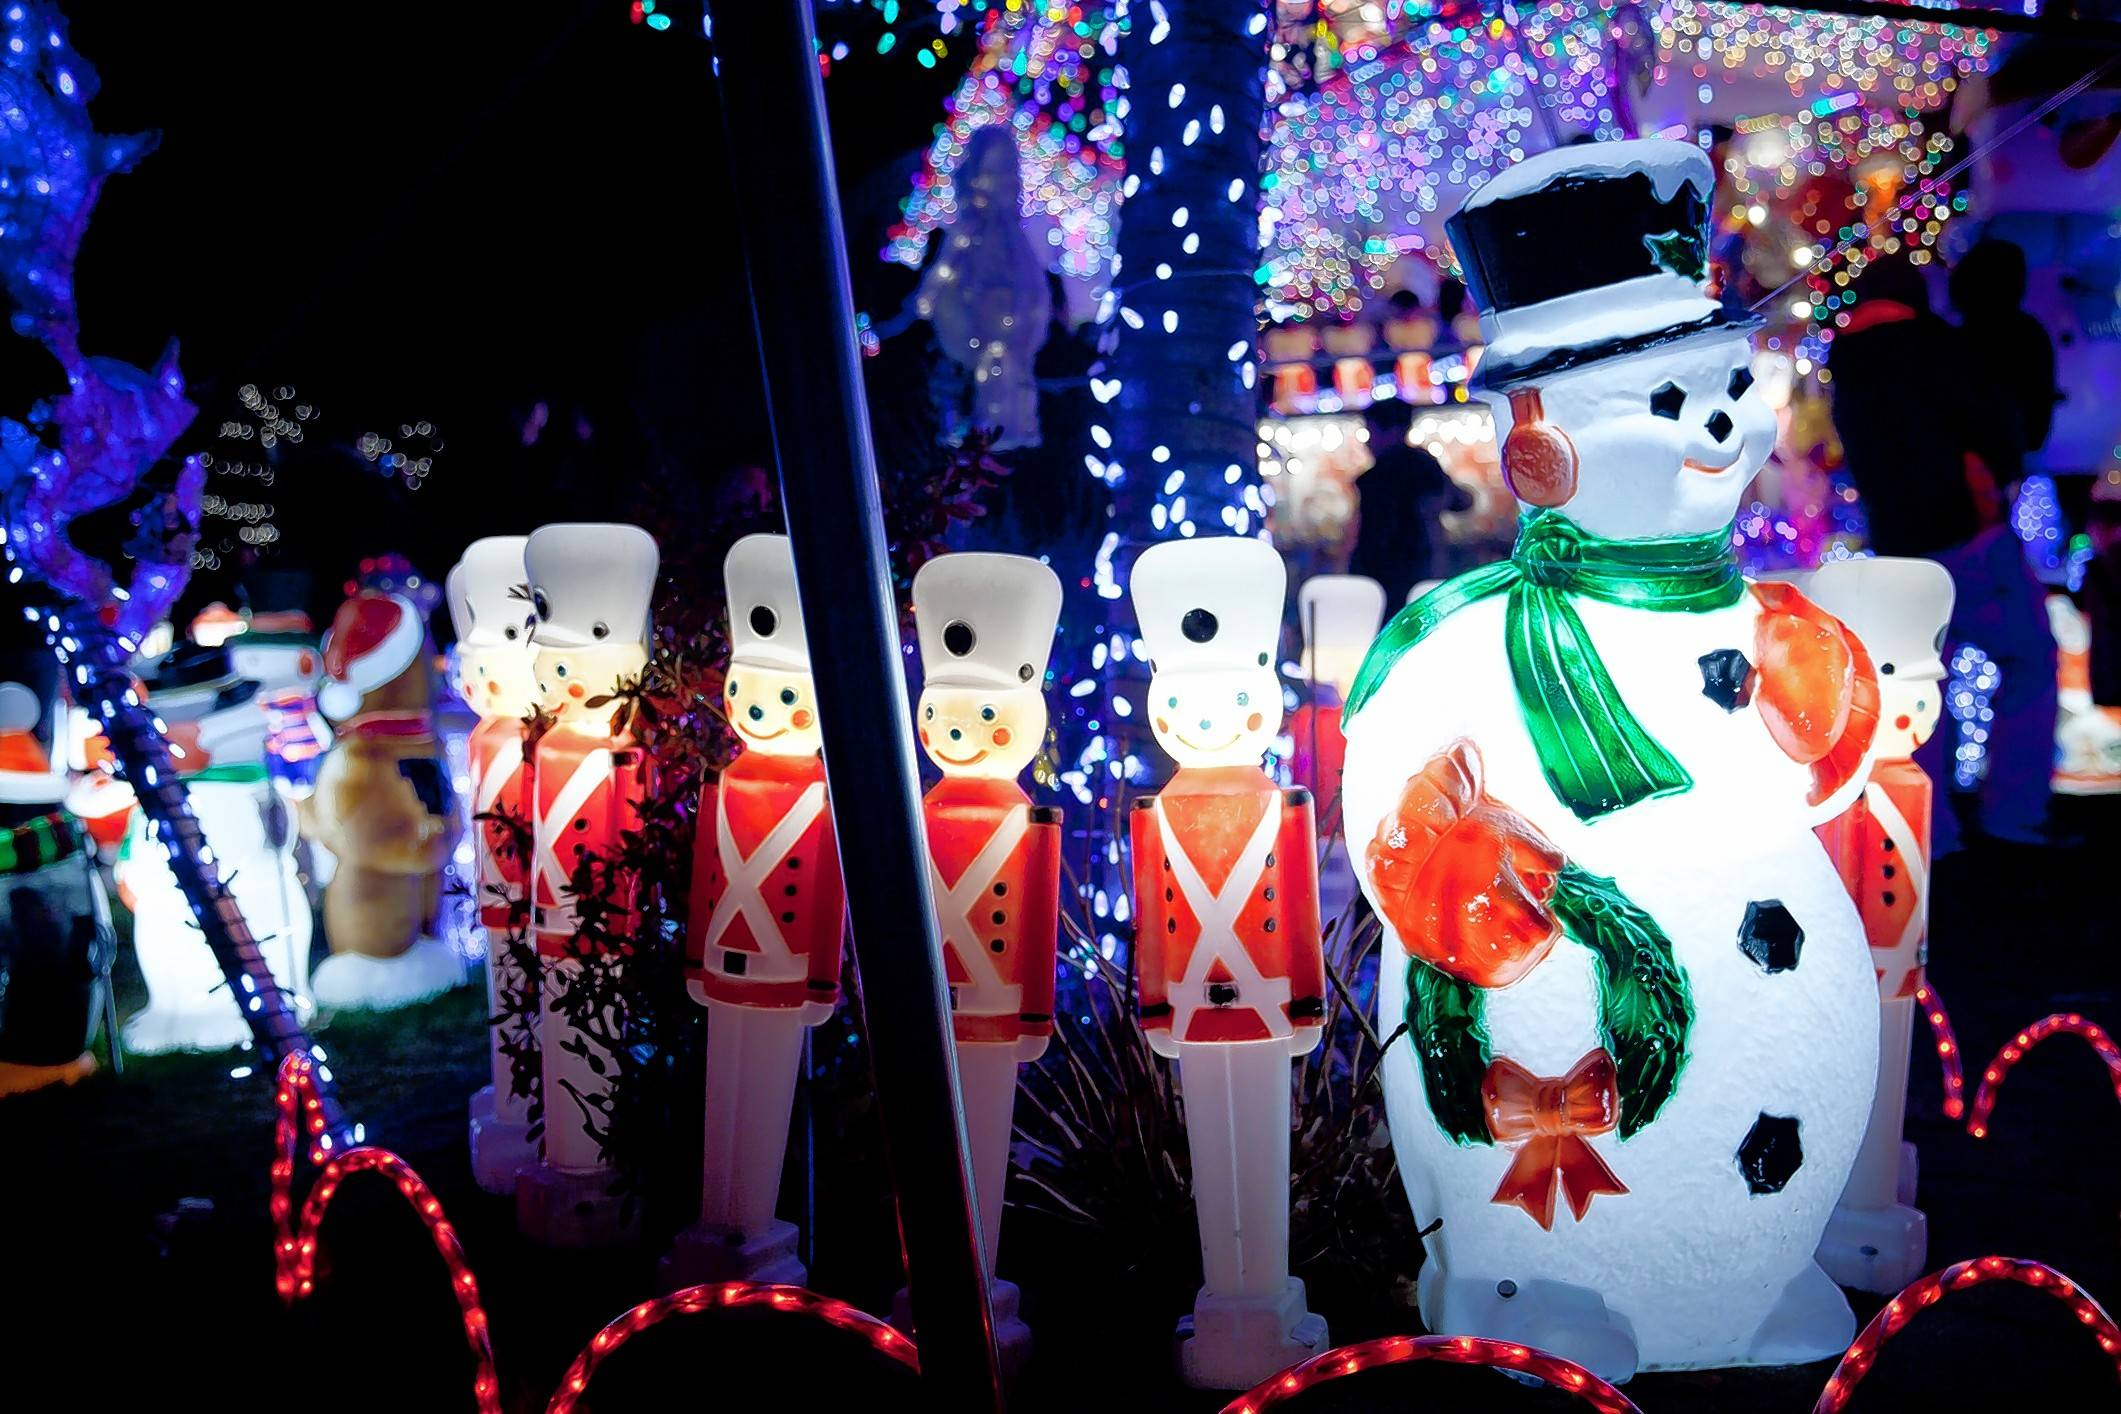 The deadline to enter the 2017 Daily Herald holiday lights contest is Friday, Dec. 8.